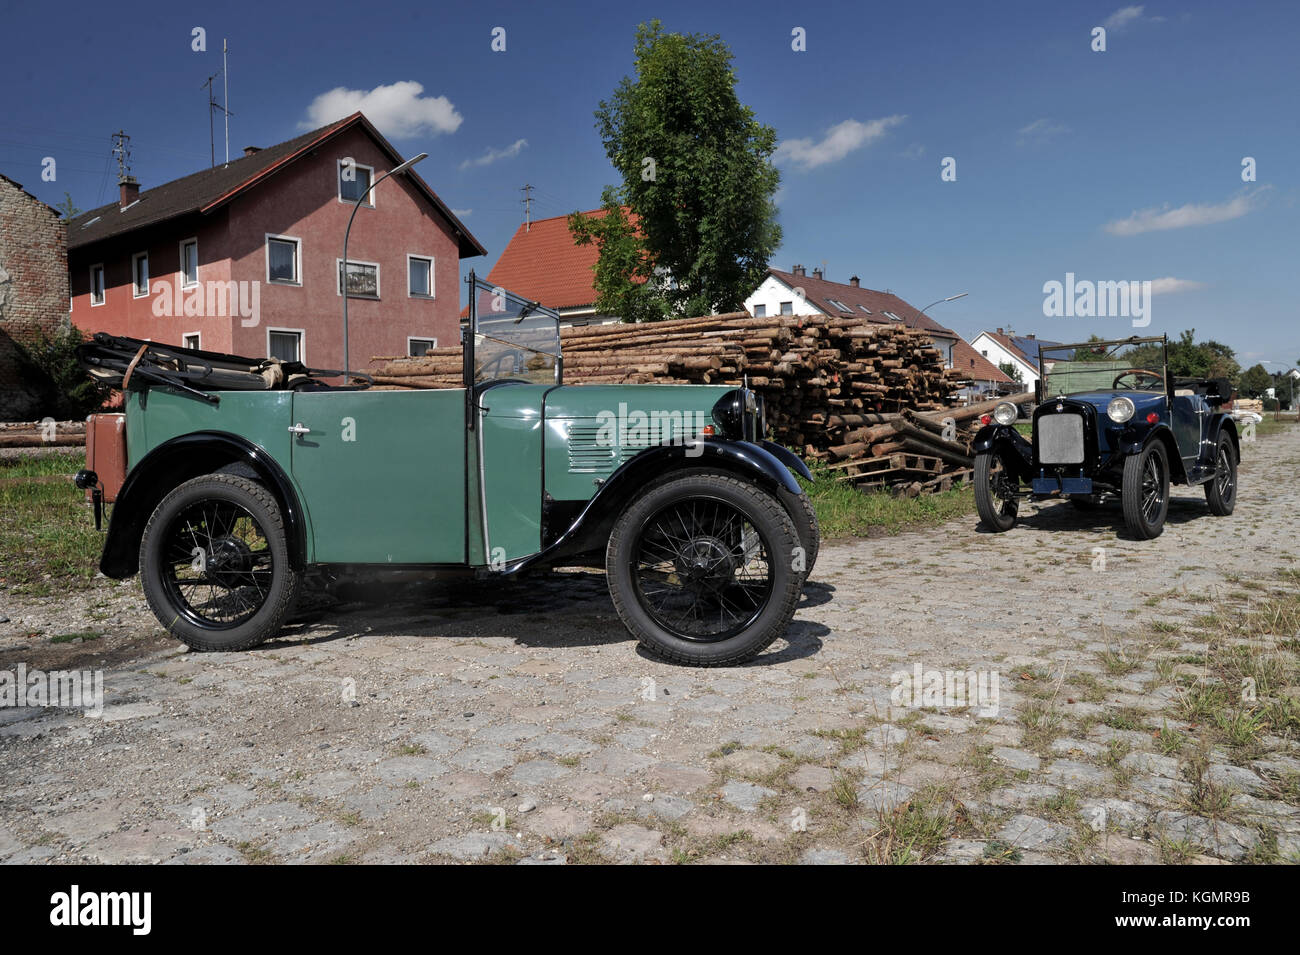 Bmw Dixie The First Car Made By Bmw From 1928 To 1931 It Was An